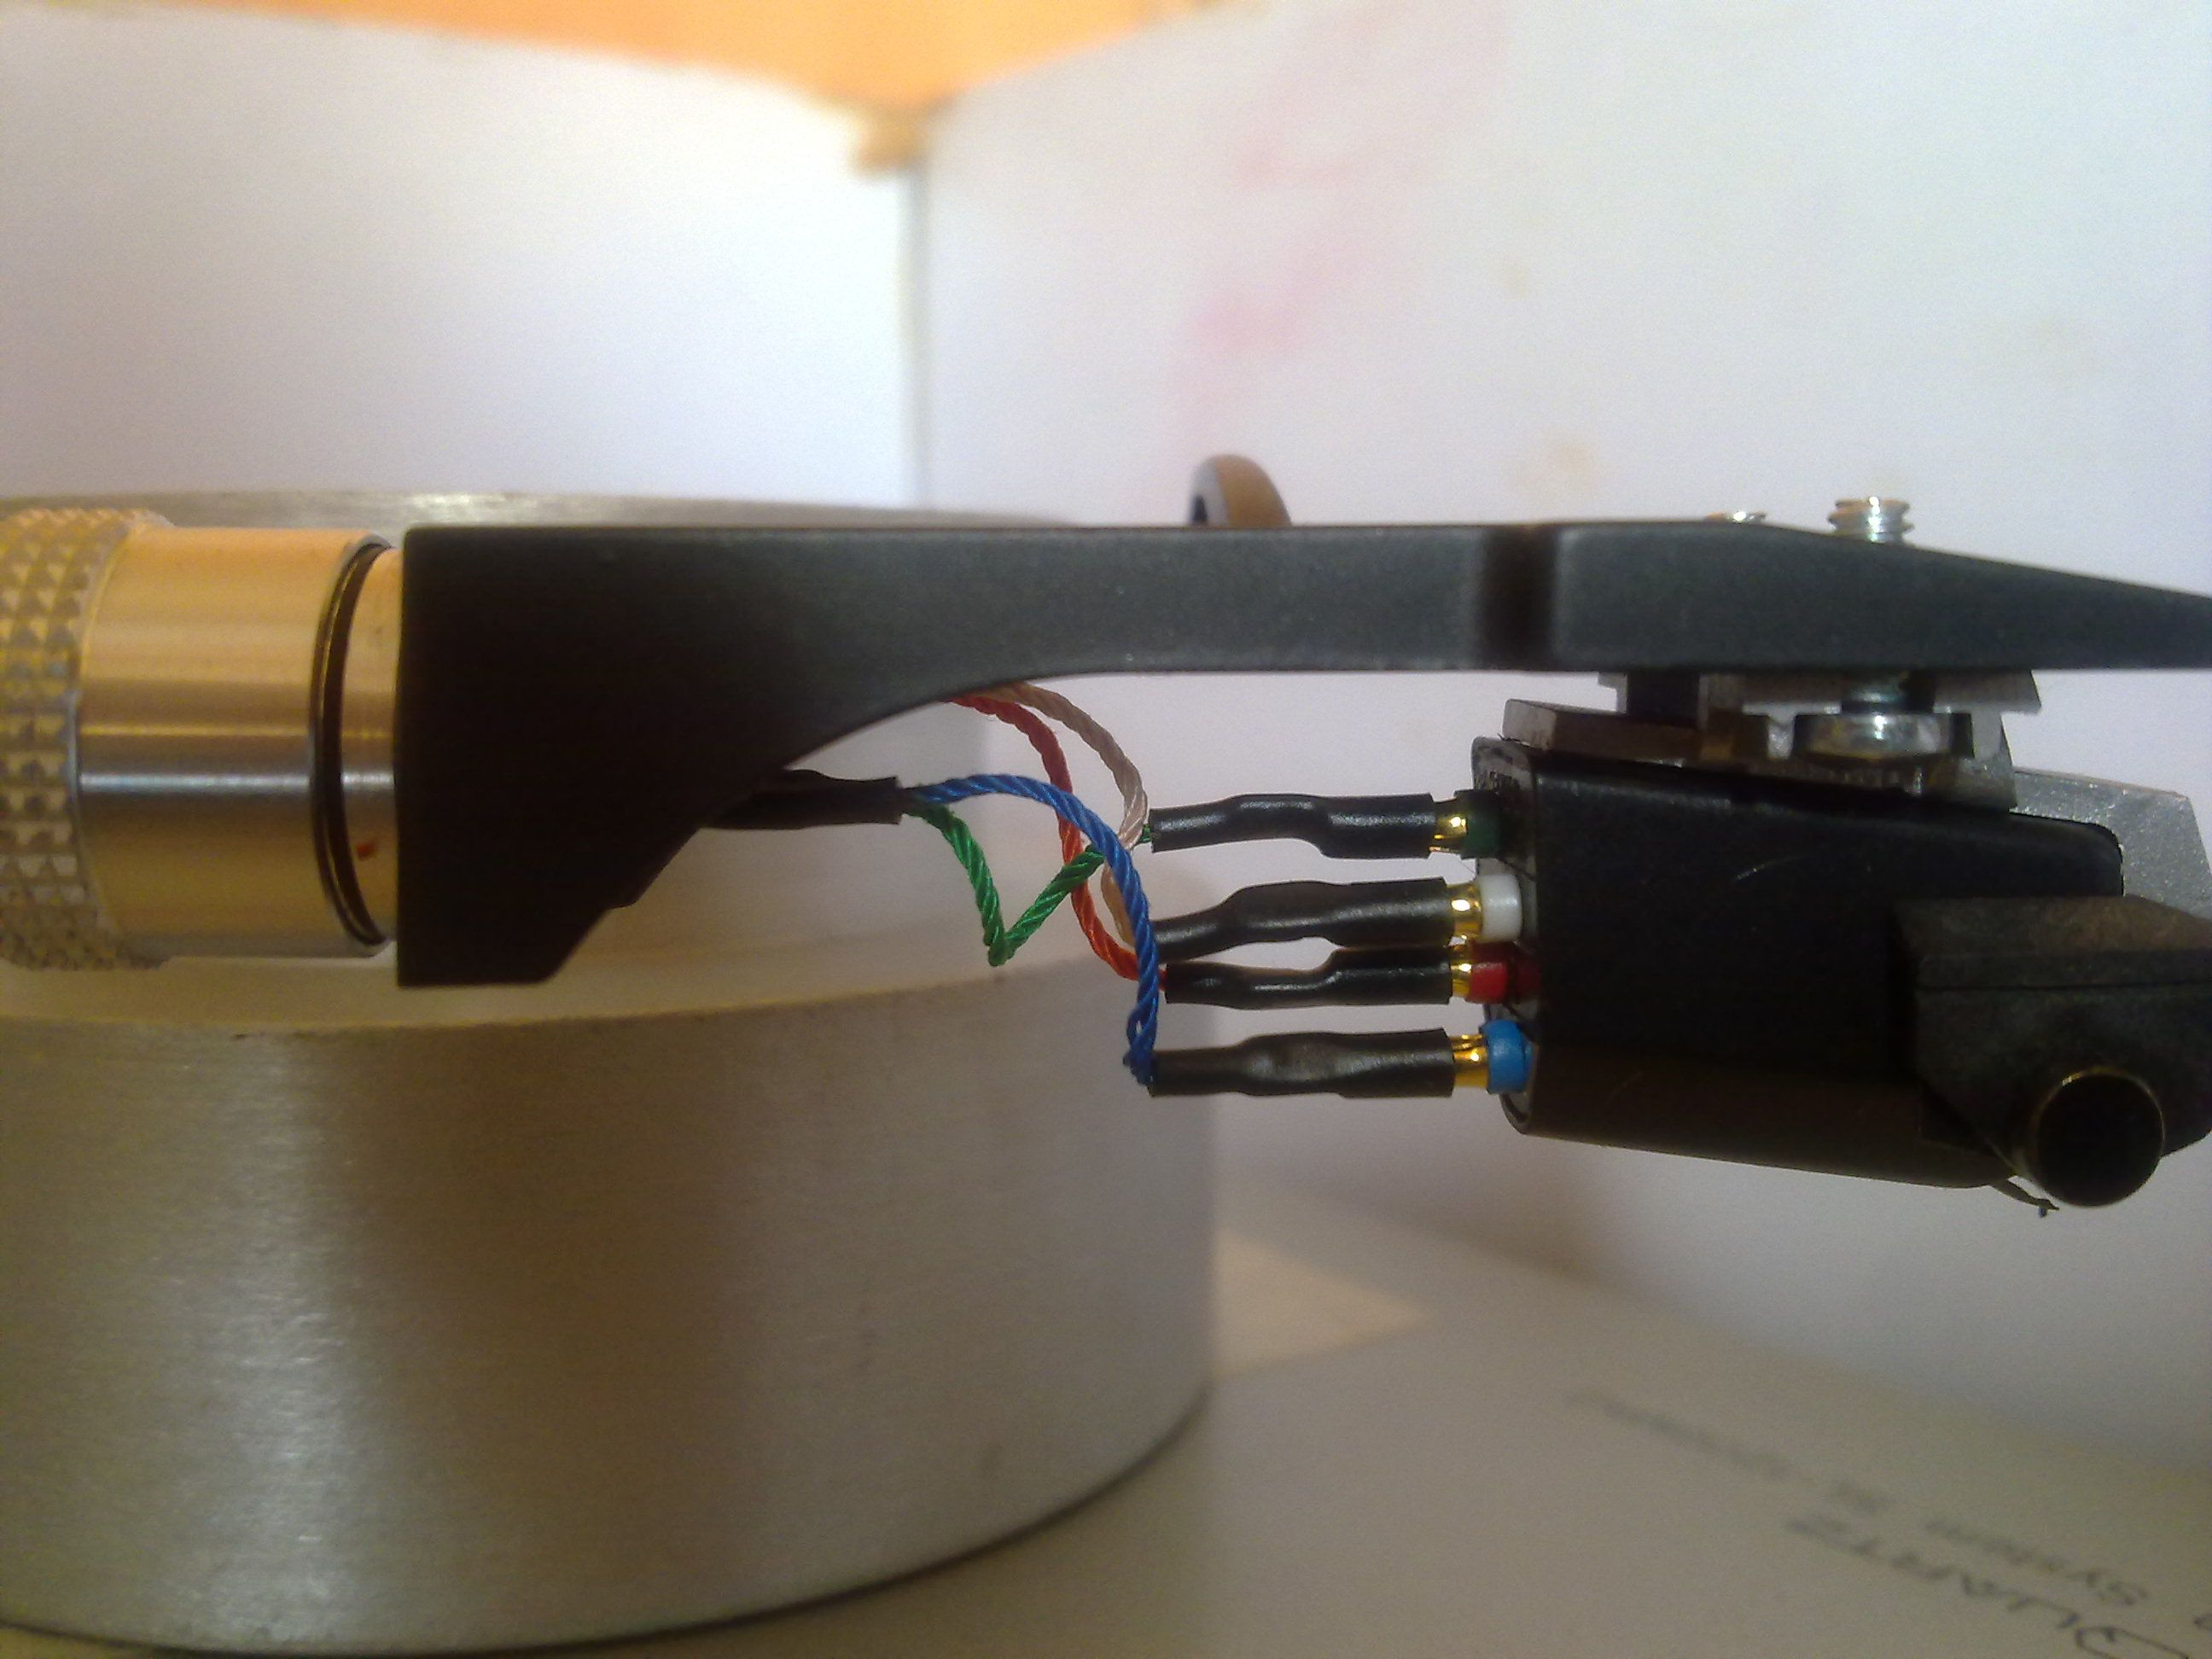 success technics sl1200mkii tonearm rewire and damping this image has been resized click this bar to view the full image the original image is sized 2592x1944